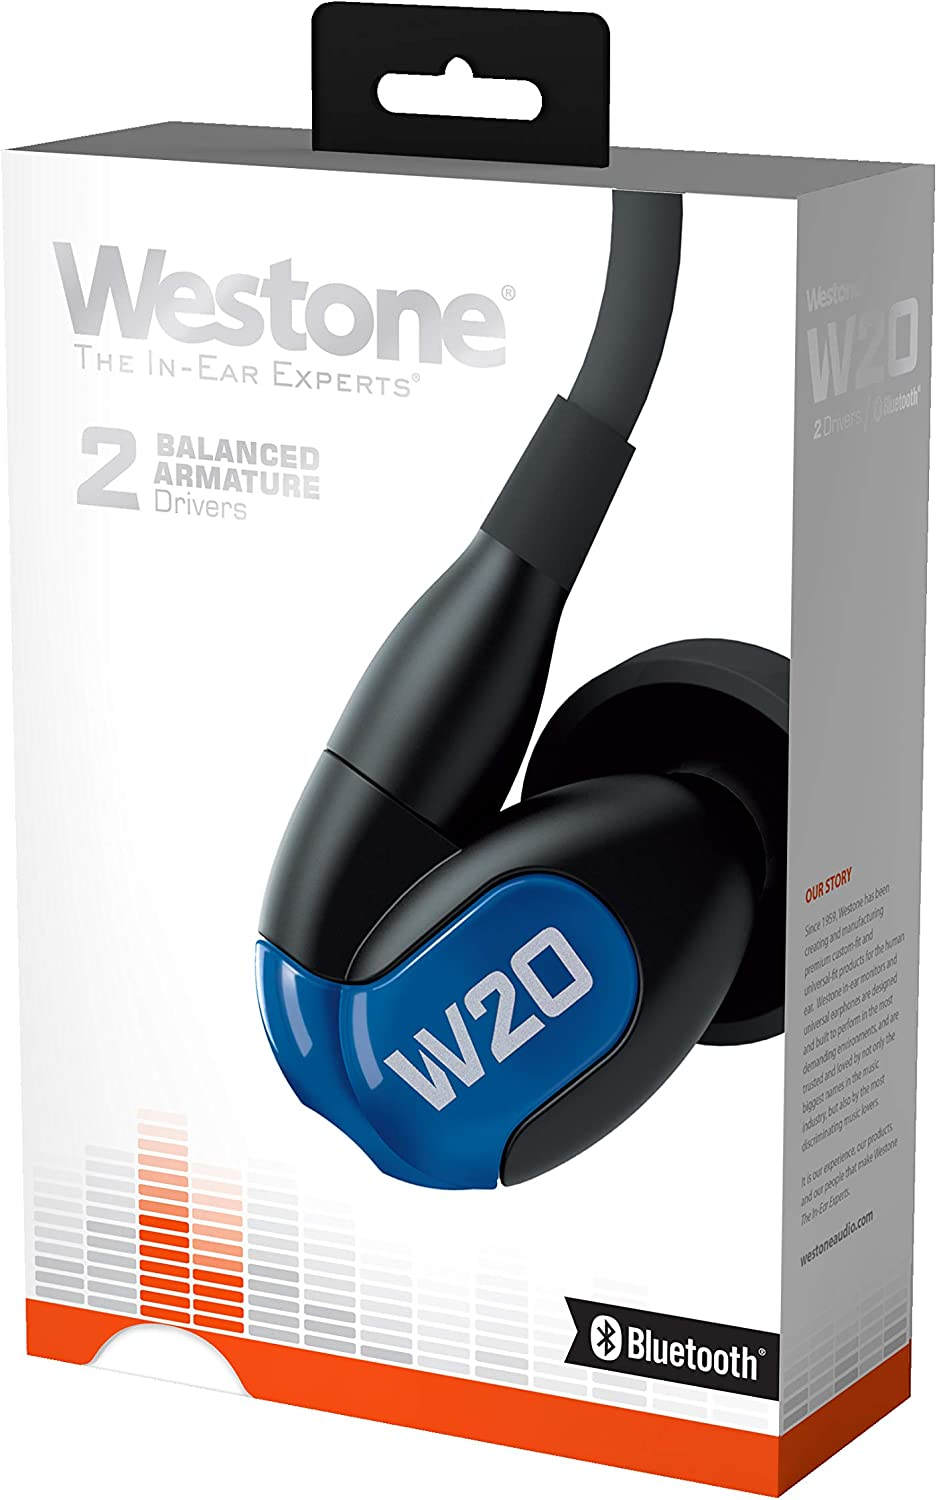 Westone W20 with Bluetooth Cable Dual-Driver True-Fit Earphones with 3 Button Cable with Microphone